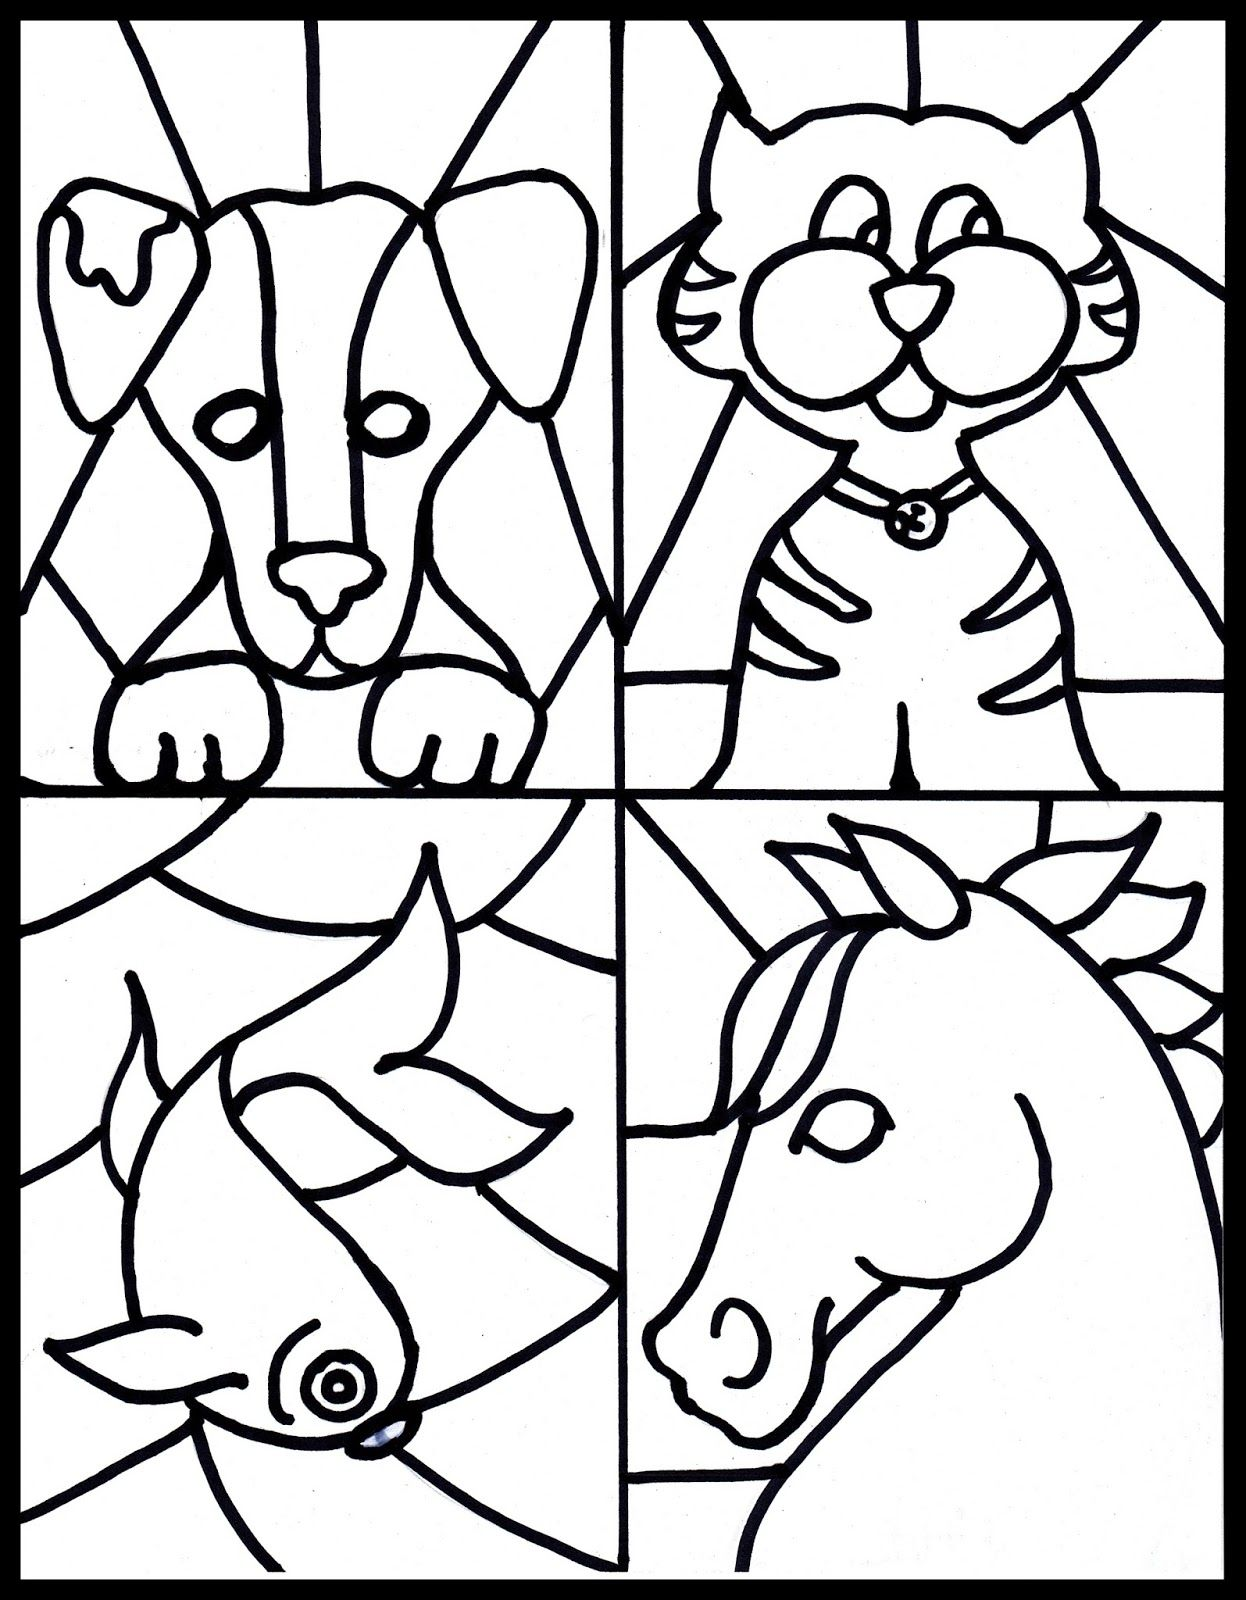 Free Stained Glass Pet Printable Kid S Craft To Go With Book Counting By 7s